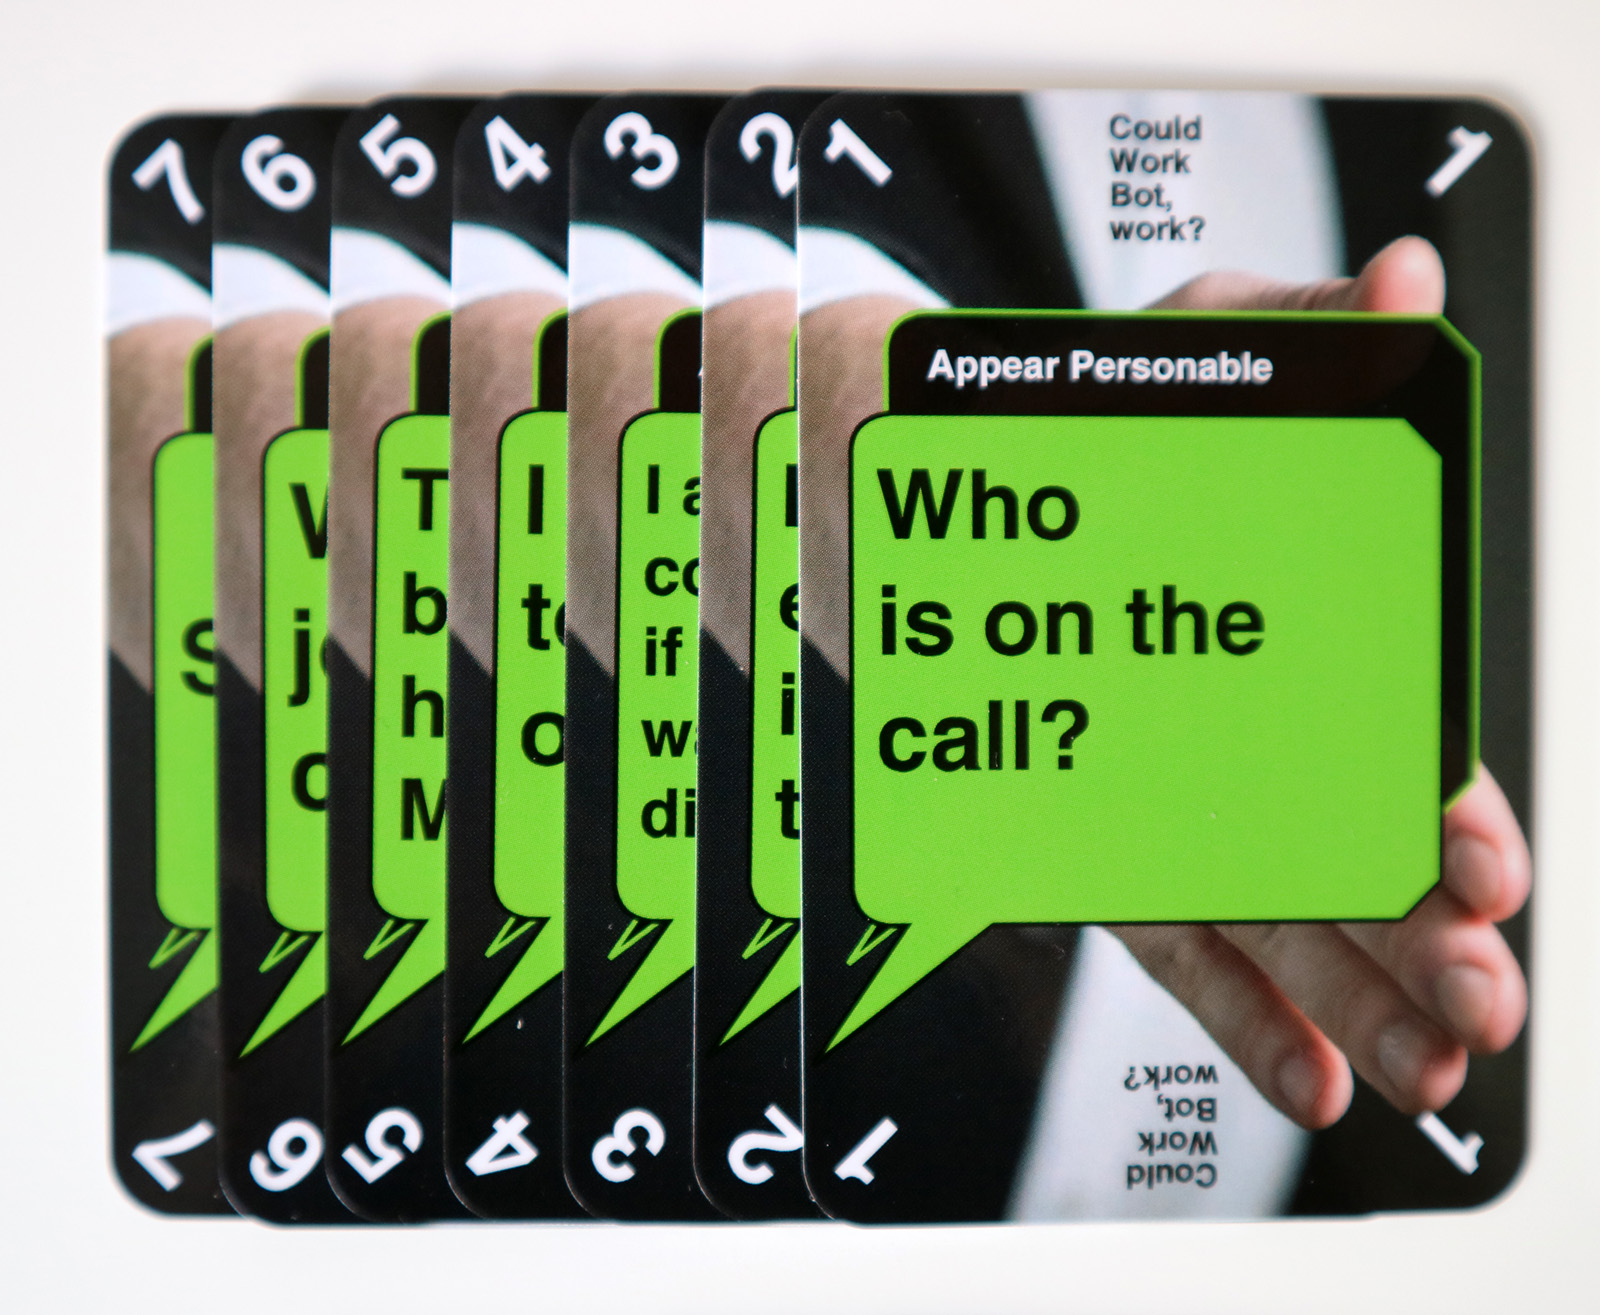 Appear Personable theme cards